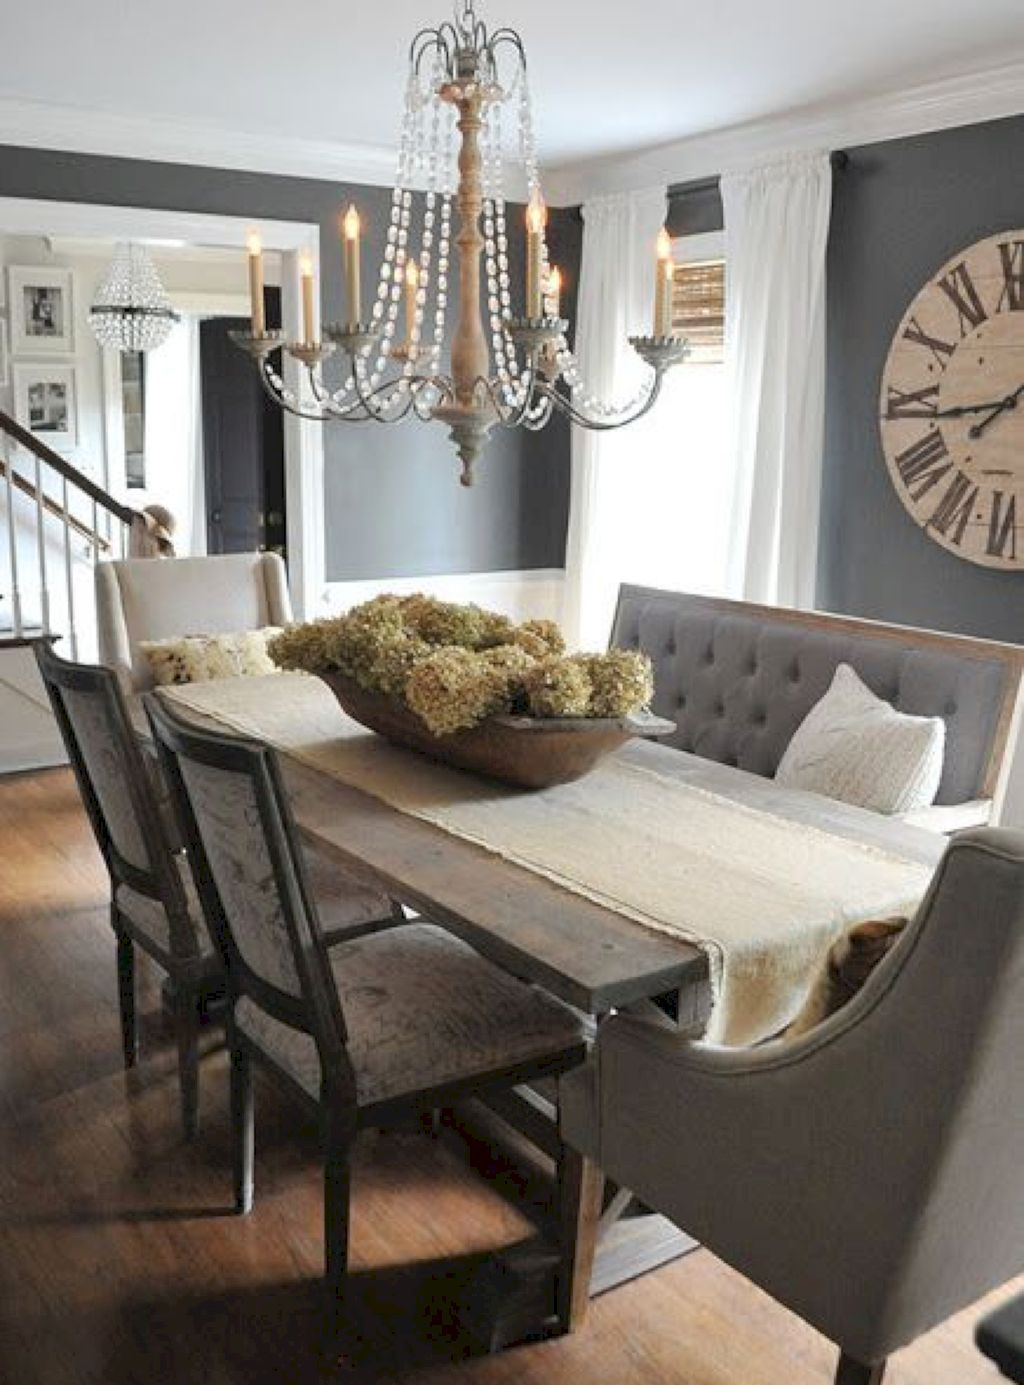 Adorable 55 Awesome Dining Room Decor and